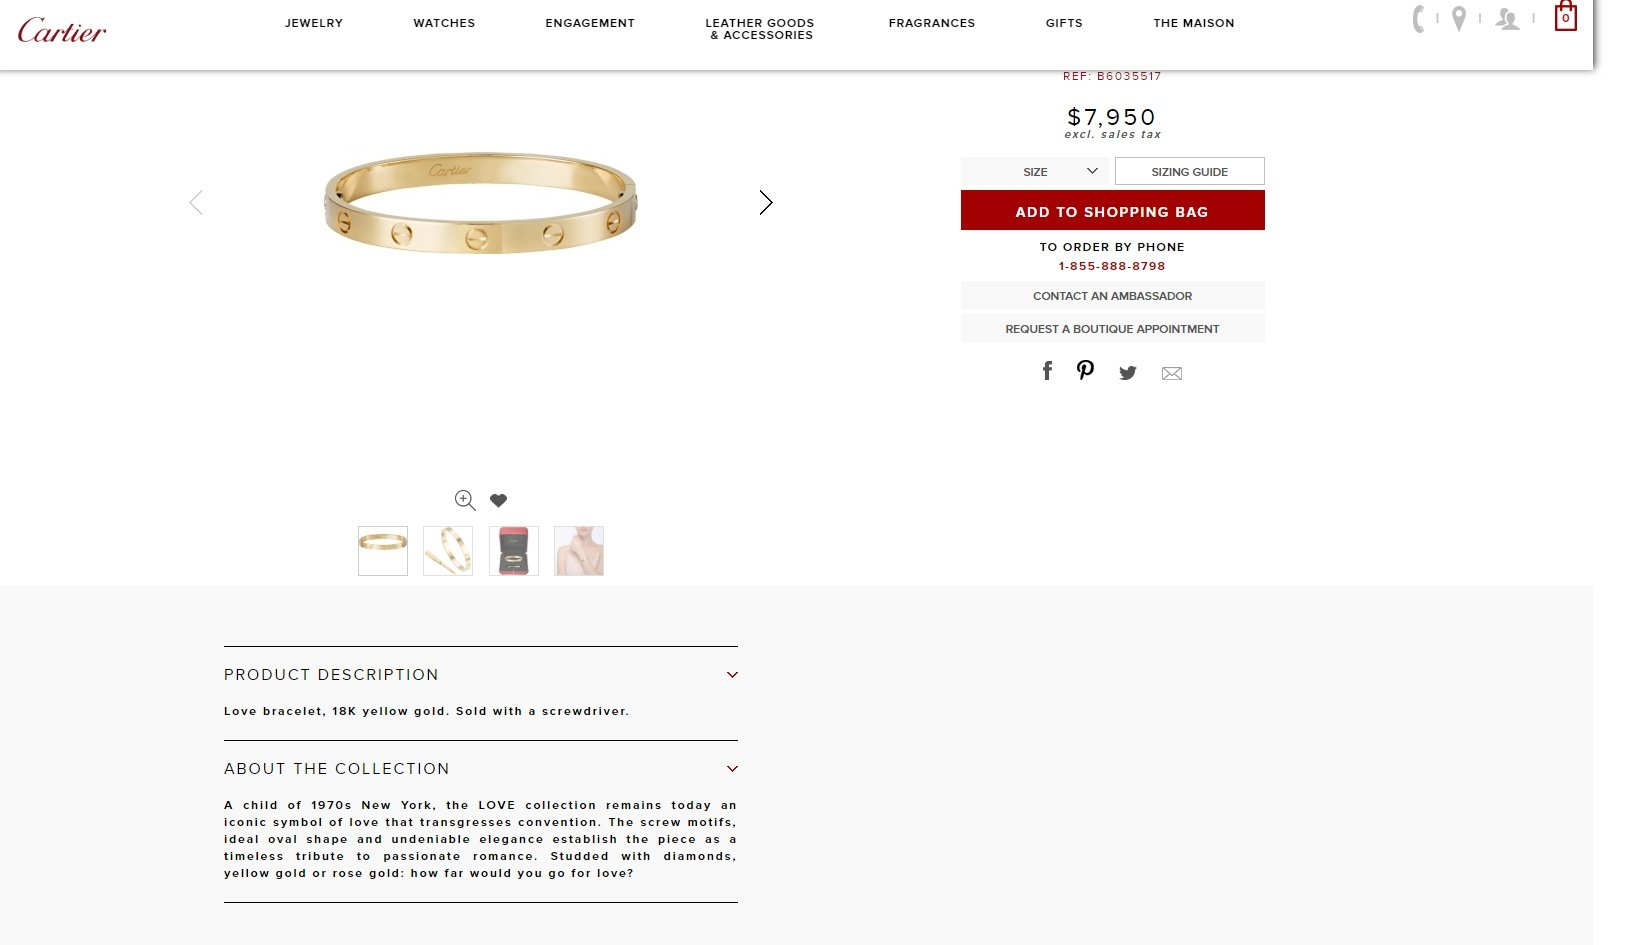 Cartier product description